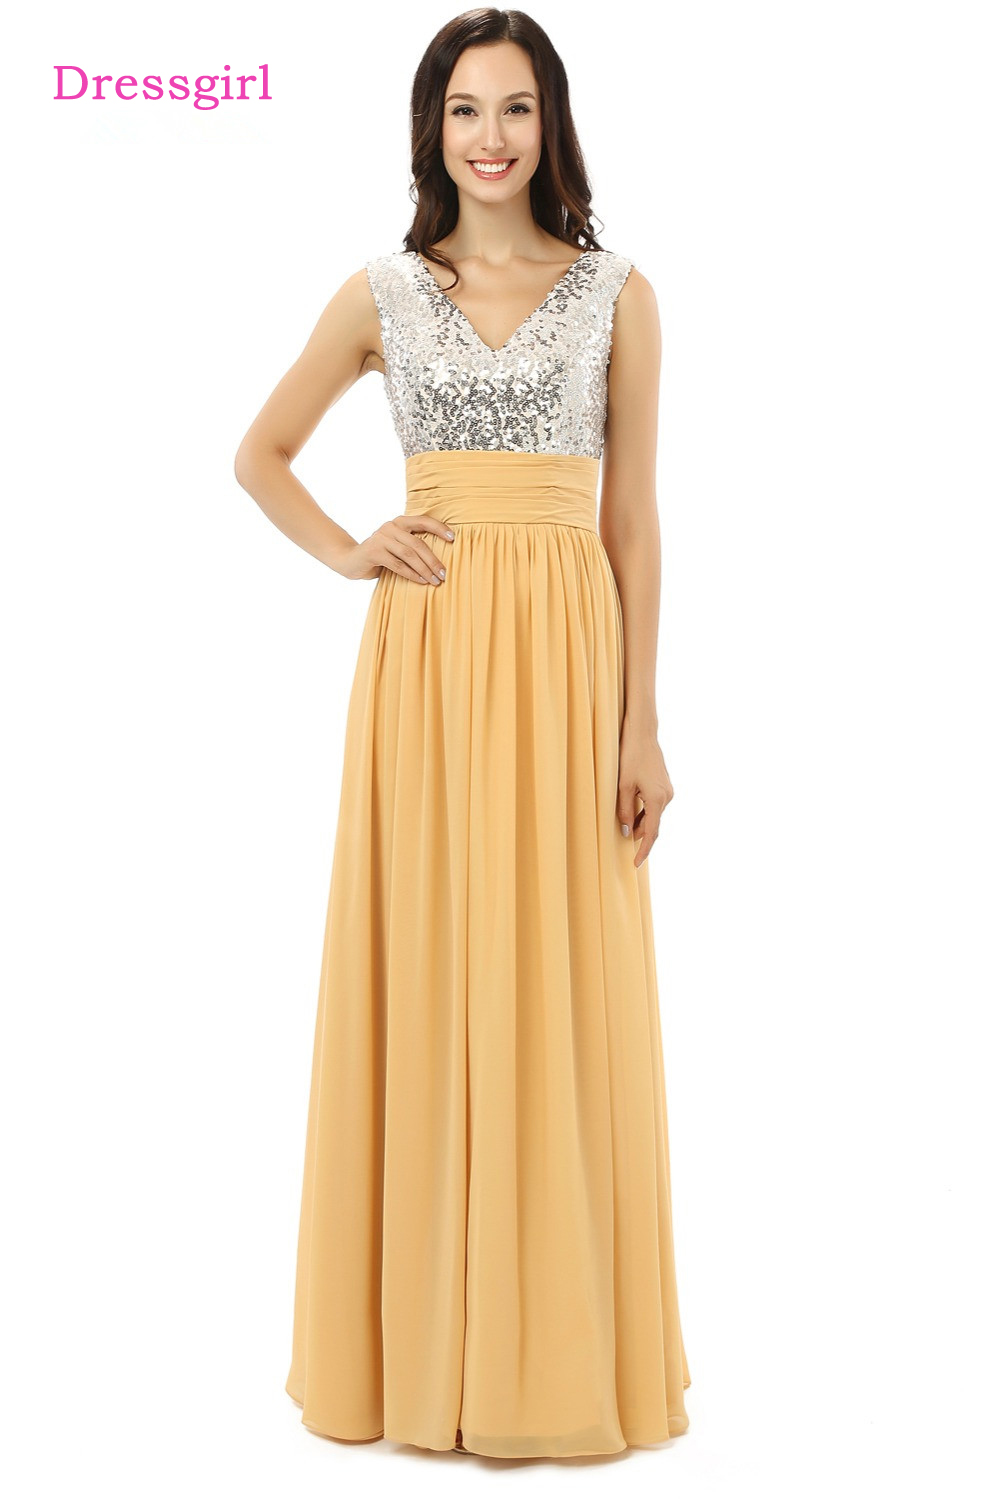 Hot Hot Elegant Evening Dresses 2018 A-line V-neck Gold Chiffon Squins Long Evening Gown Prom Dress Prom Gown